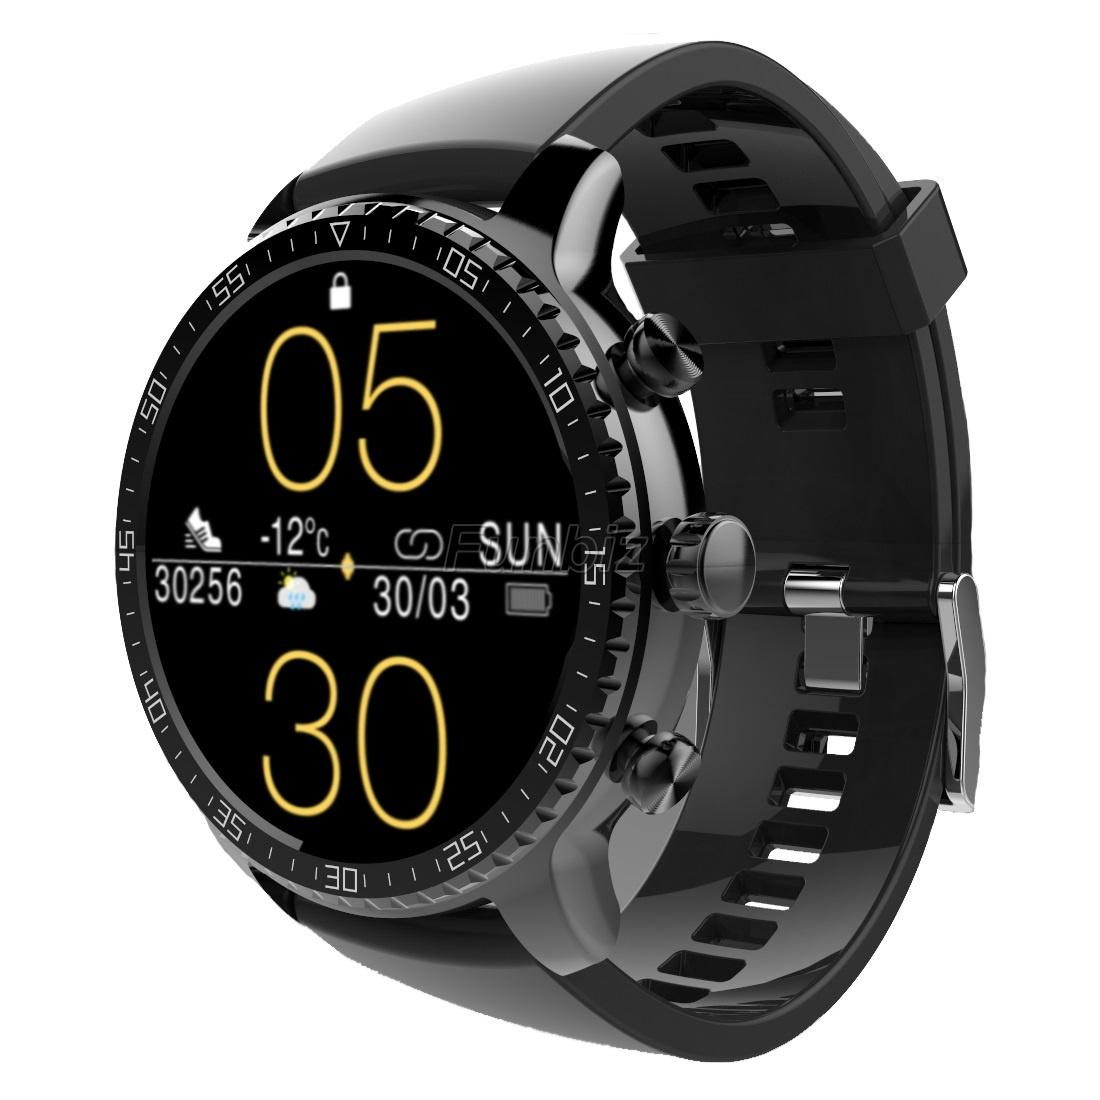 Multicolor Z20 Z20W smartwatch support phone reminding sedentary reminder GPS track record IP68 waterproof Z20&Z20W smart watch wristbands